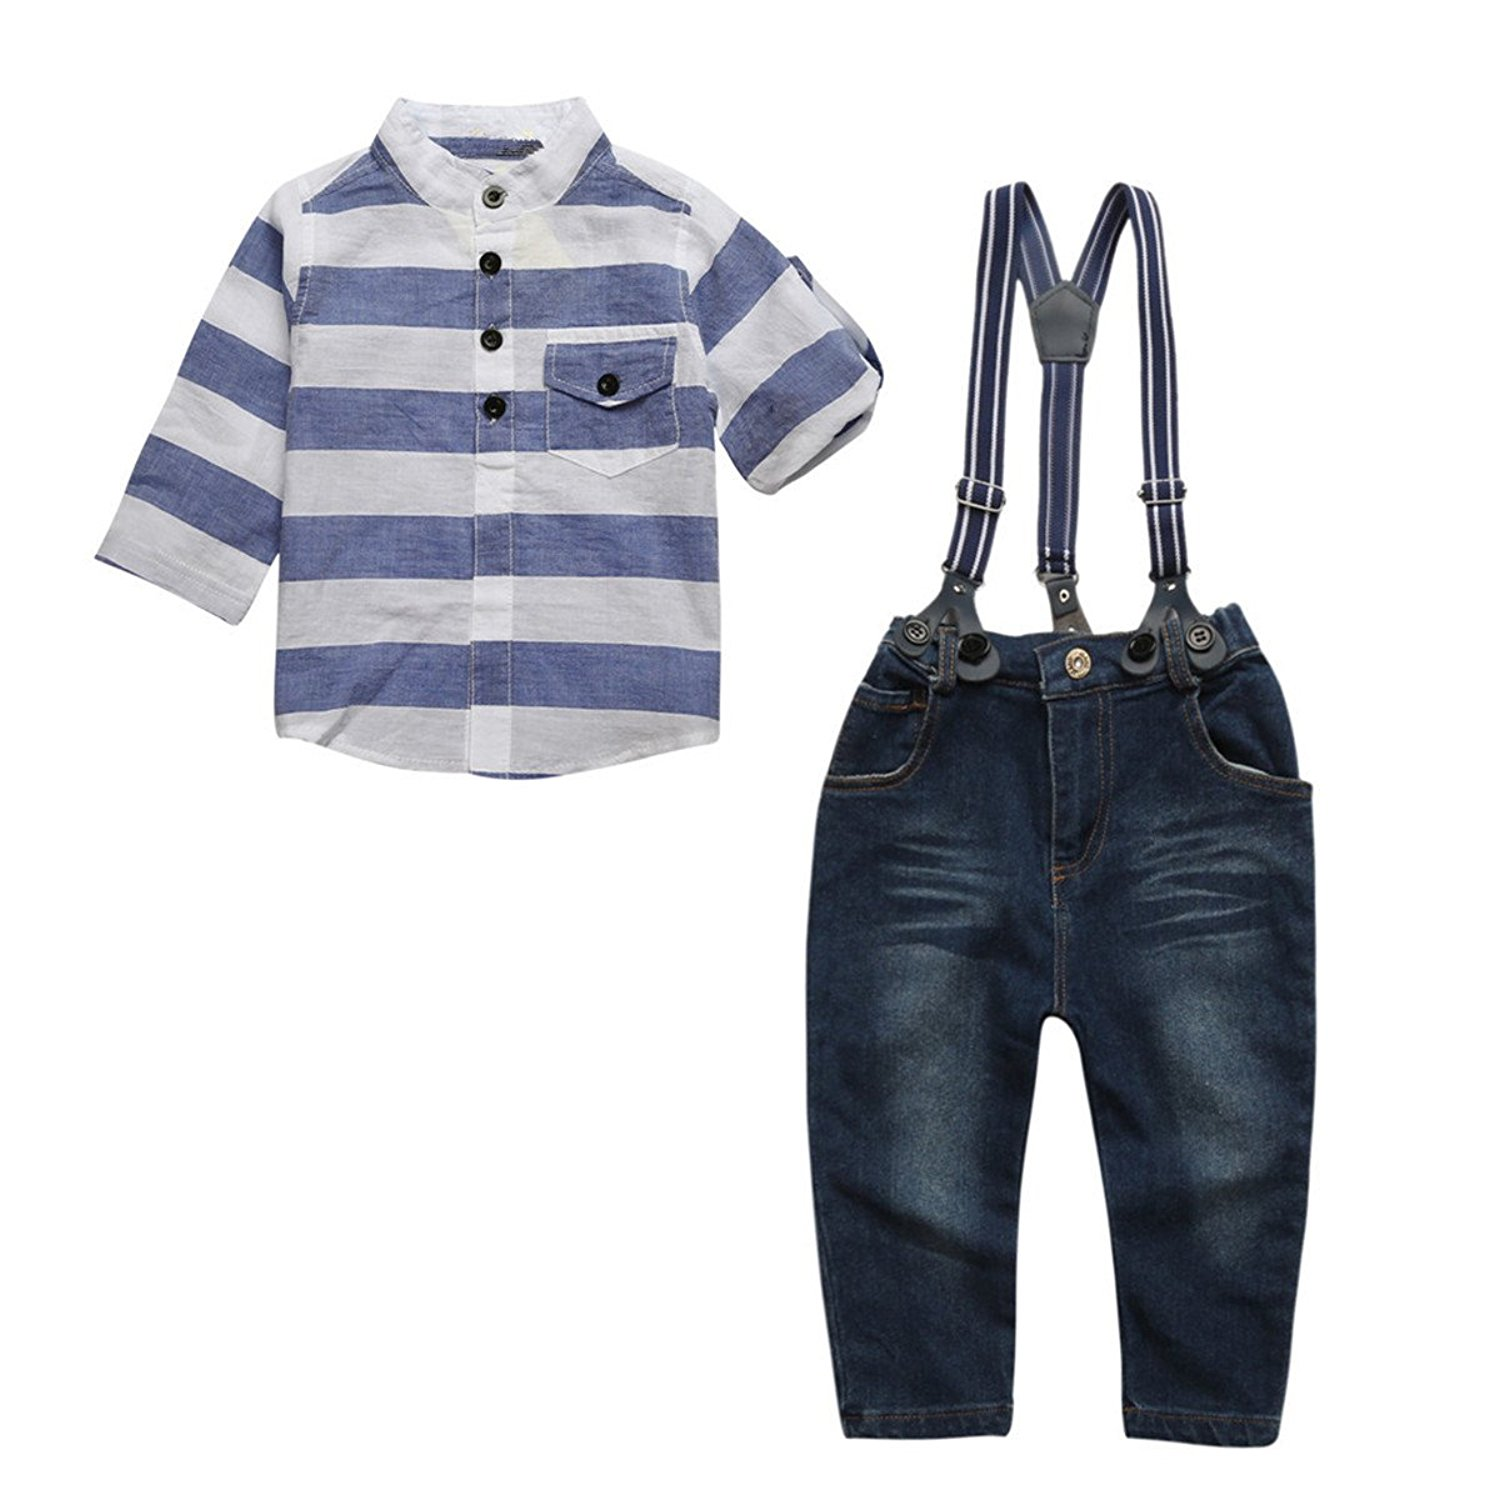 57305511a Get Quotations · ZIYOYOR Kids Boys Gentleman Outfit Suspenders Denim Pants  and Stripe Shirts Clothing Set